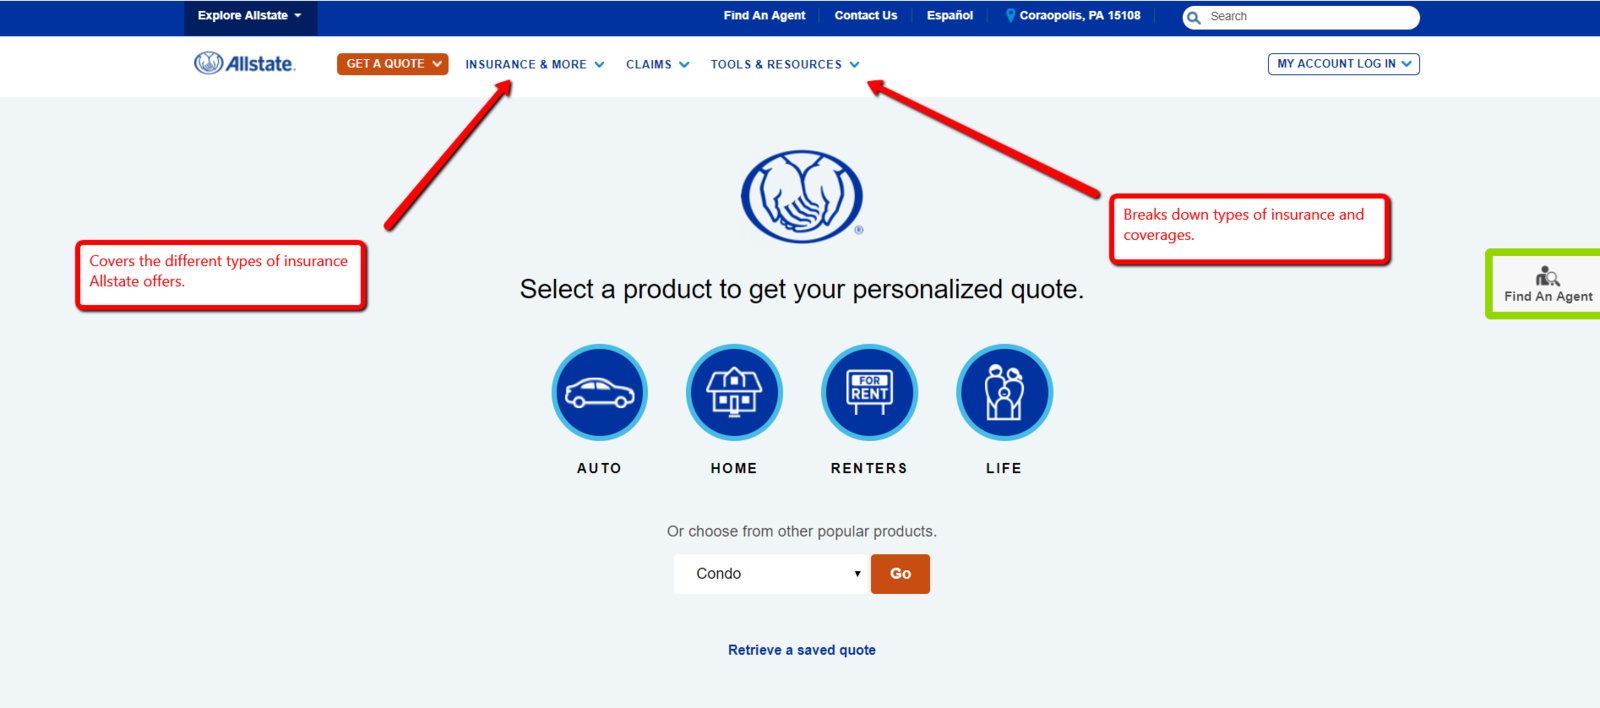 Allstate website easy to use